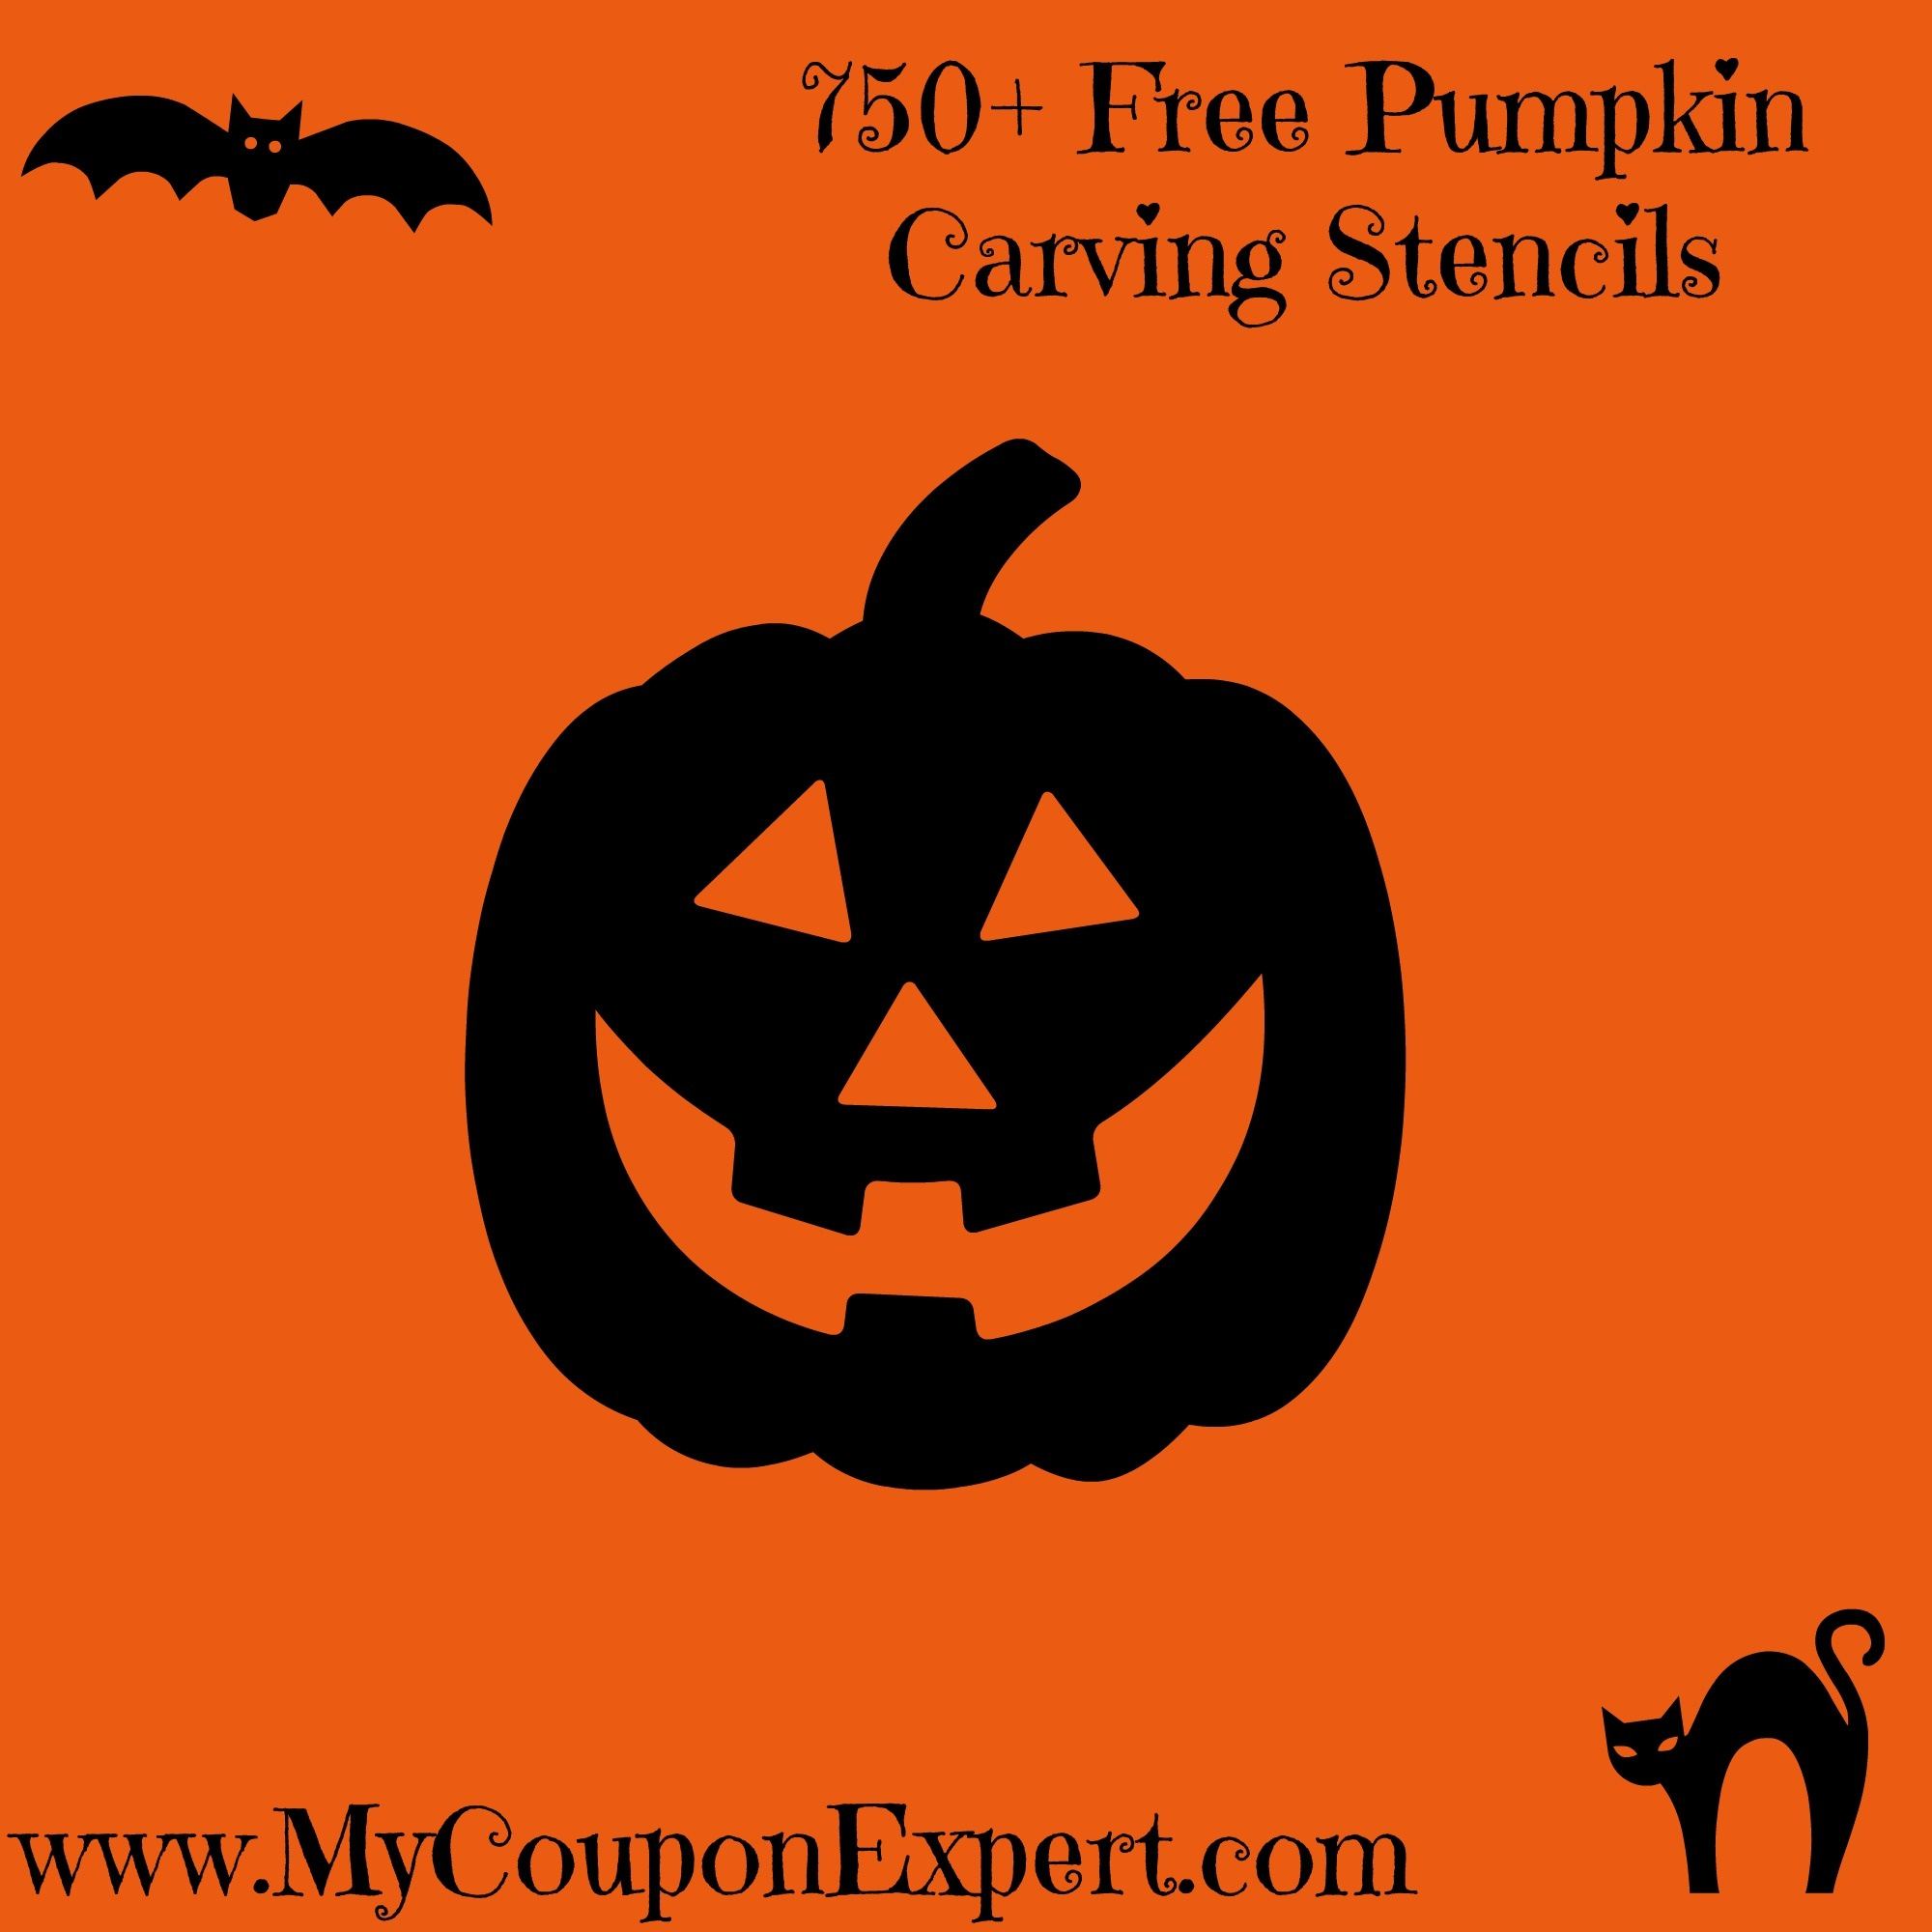 750+ Free Pumpkin Carving Stencils · - Pumpkin Carving Patterns Free Printable